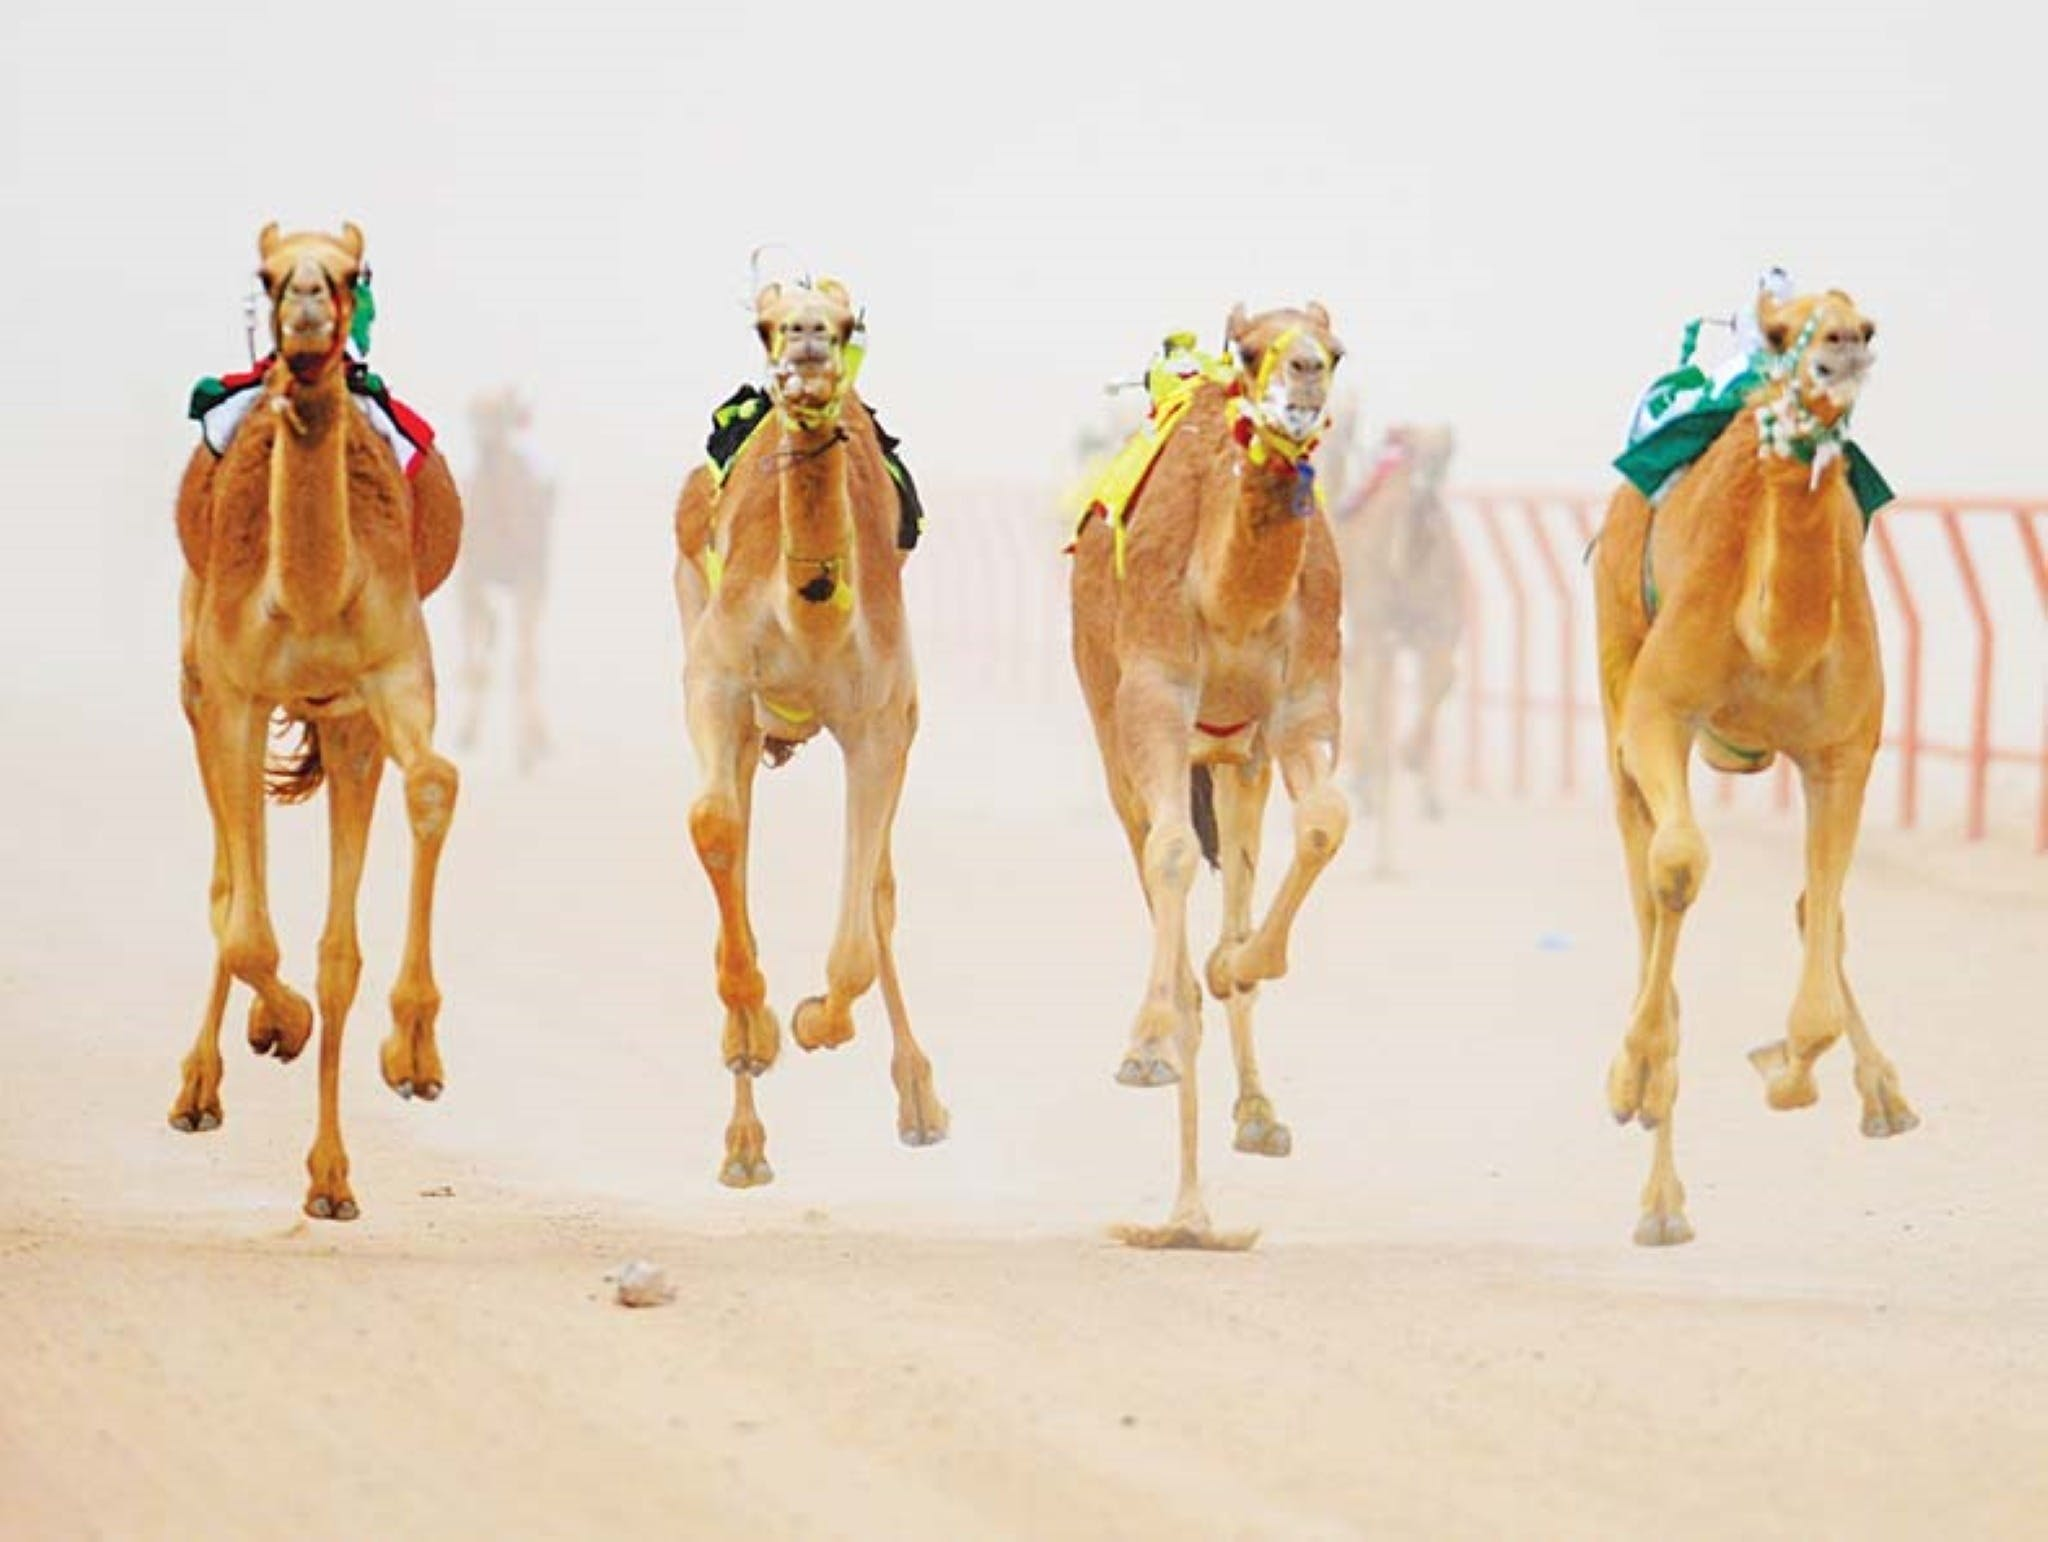 The Quirindi Camel Cup - New South Wales Tourism